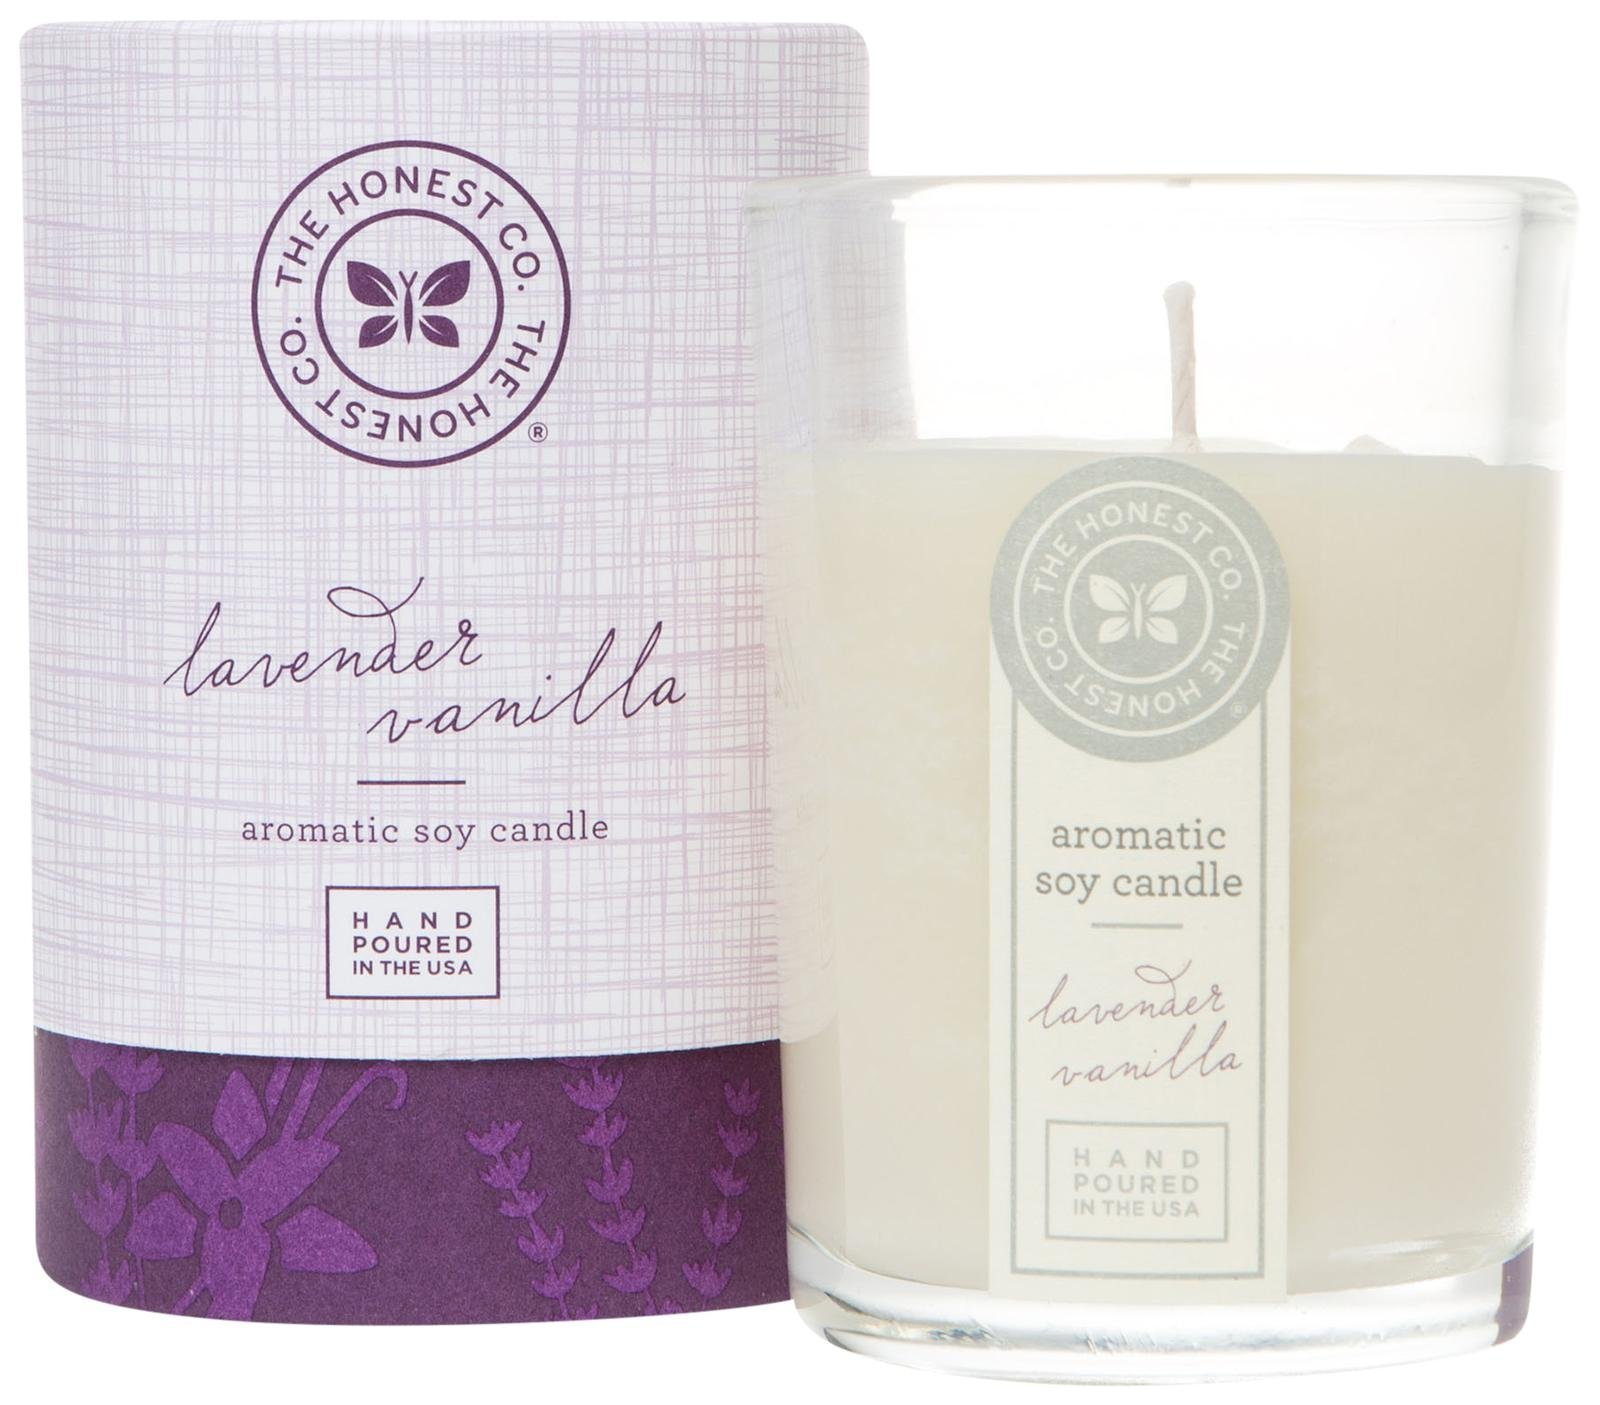 Honest Aromatic Soy Candle, Lavender Vanilla, 8 Ounce